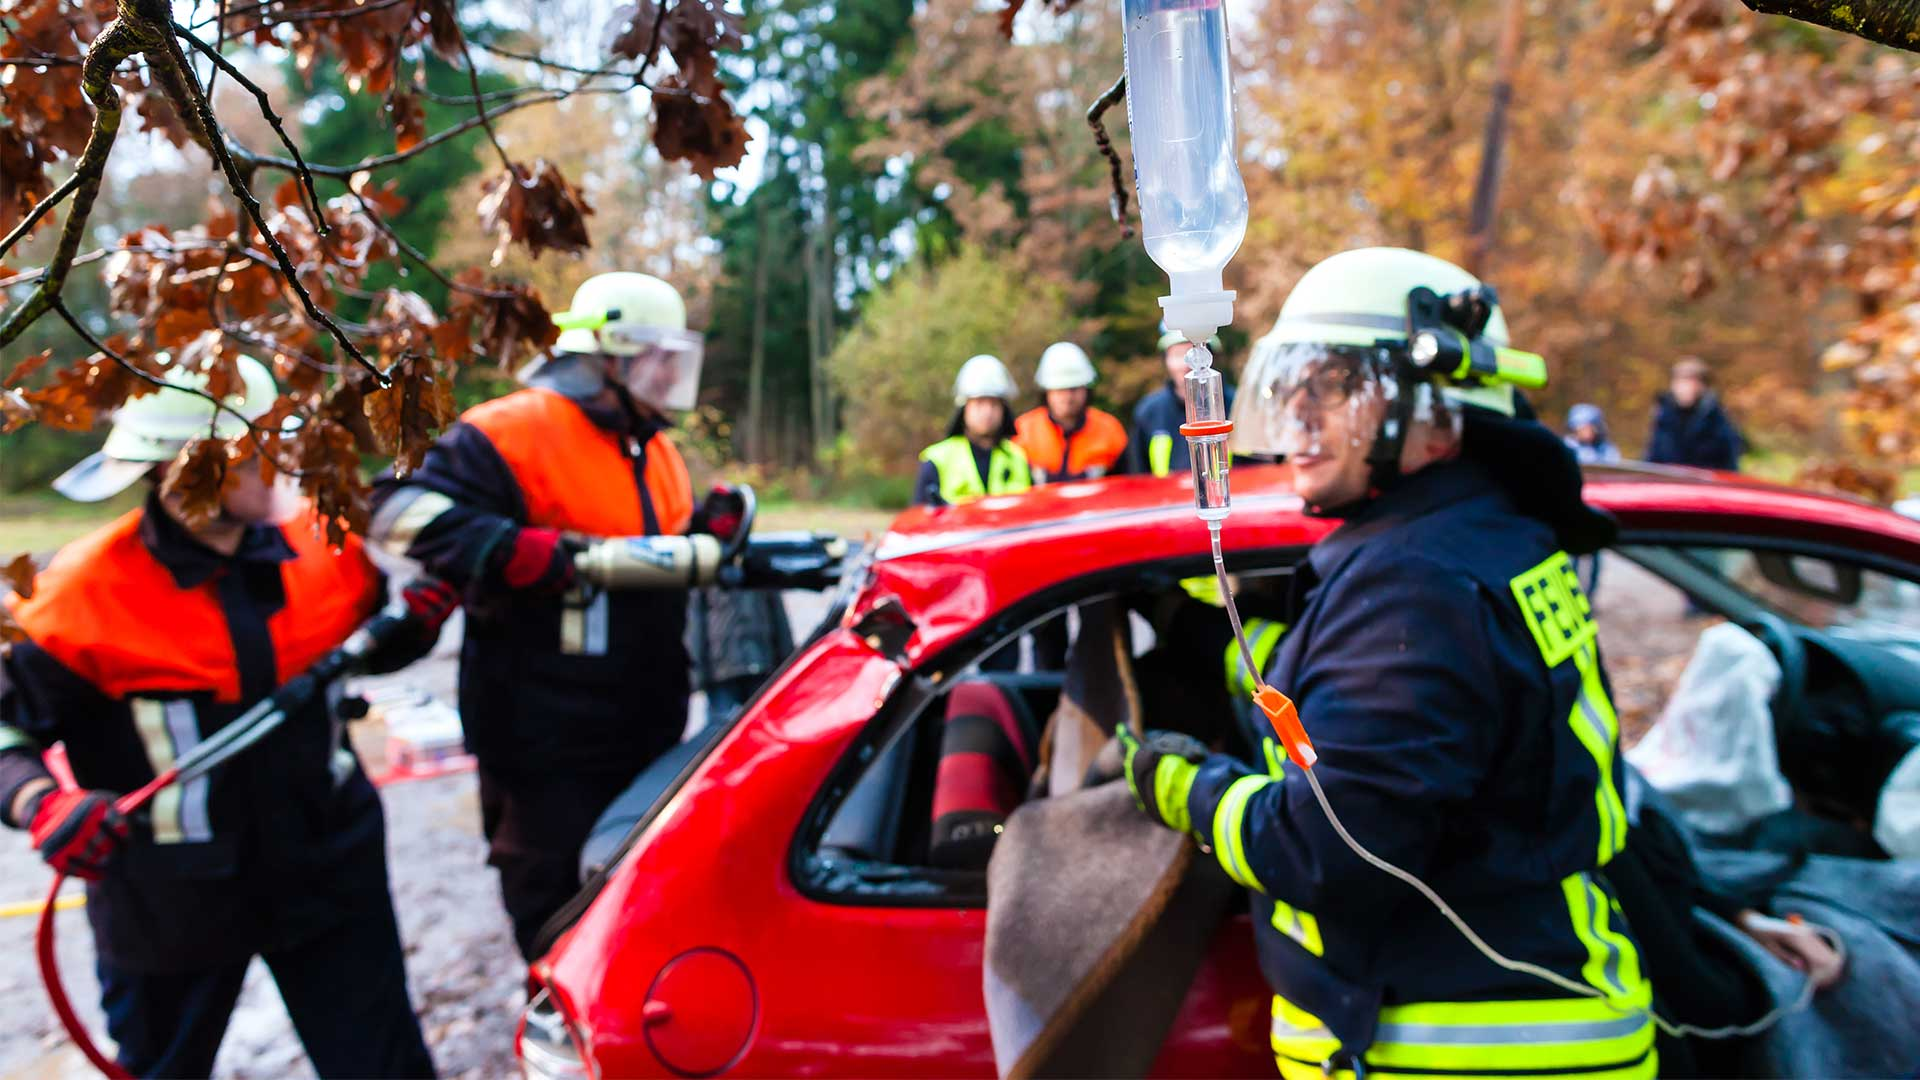 5 Ways Boron Can Be An Extrication Agent